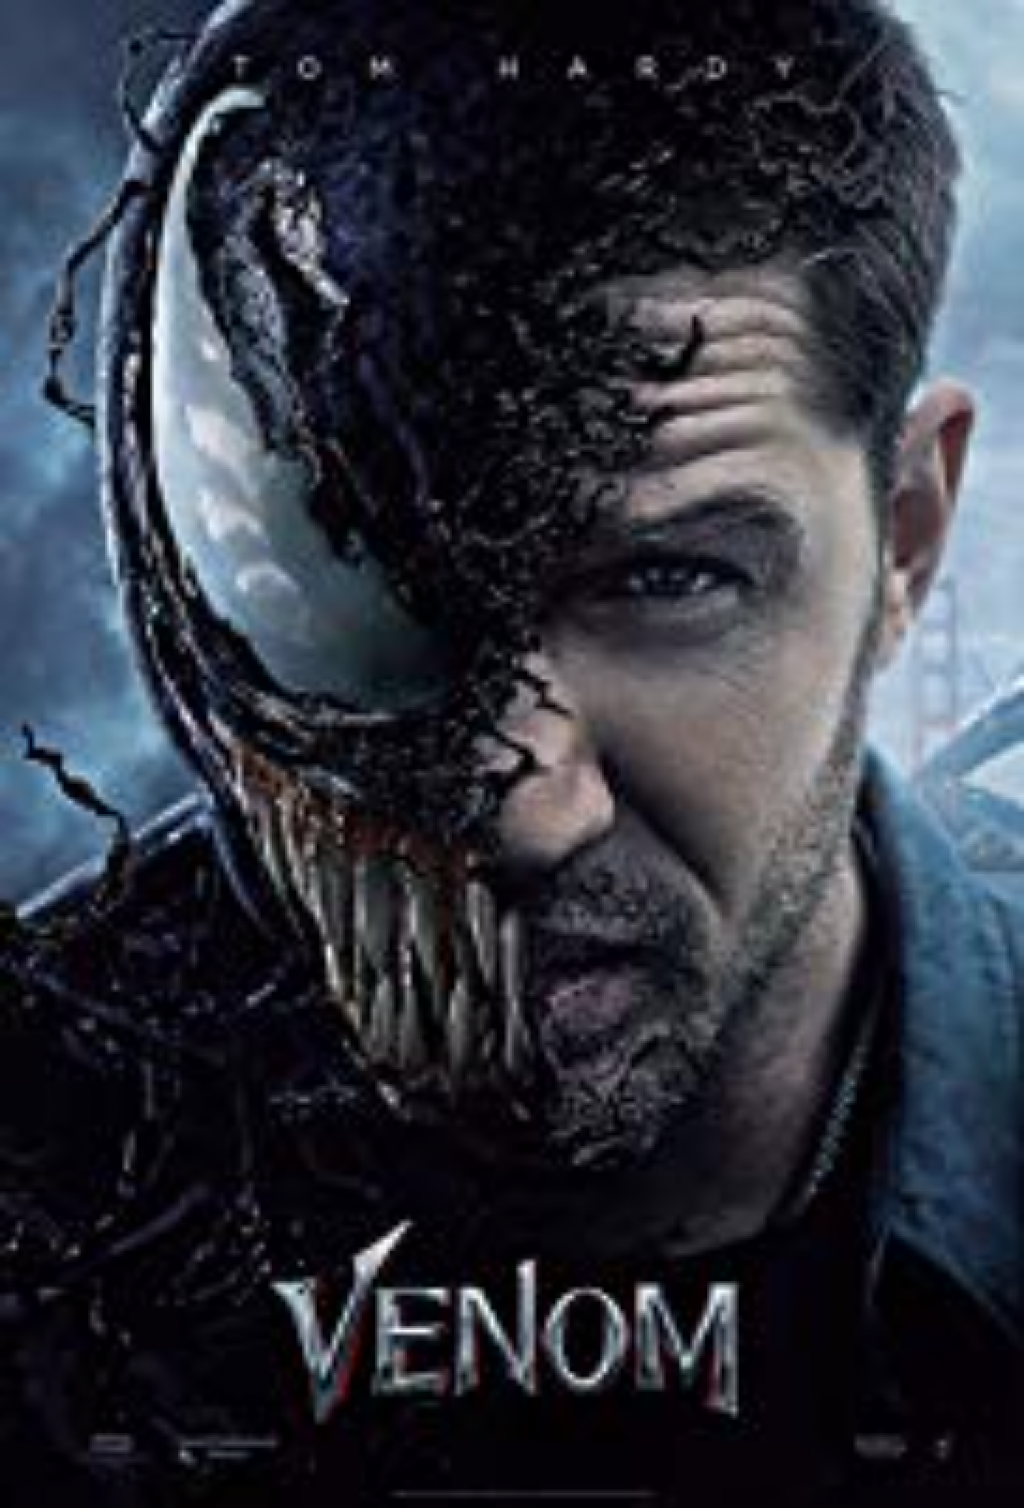 'Venom' Surprises With a Different Kind of Hero